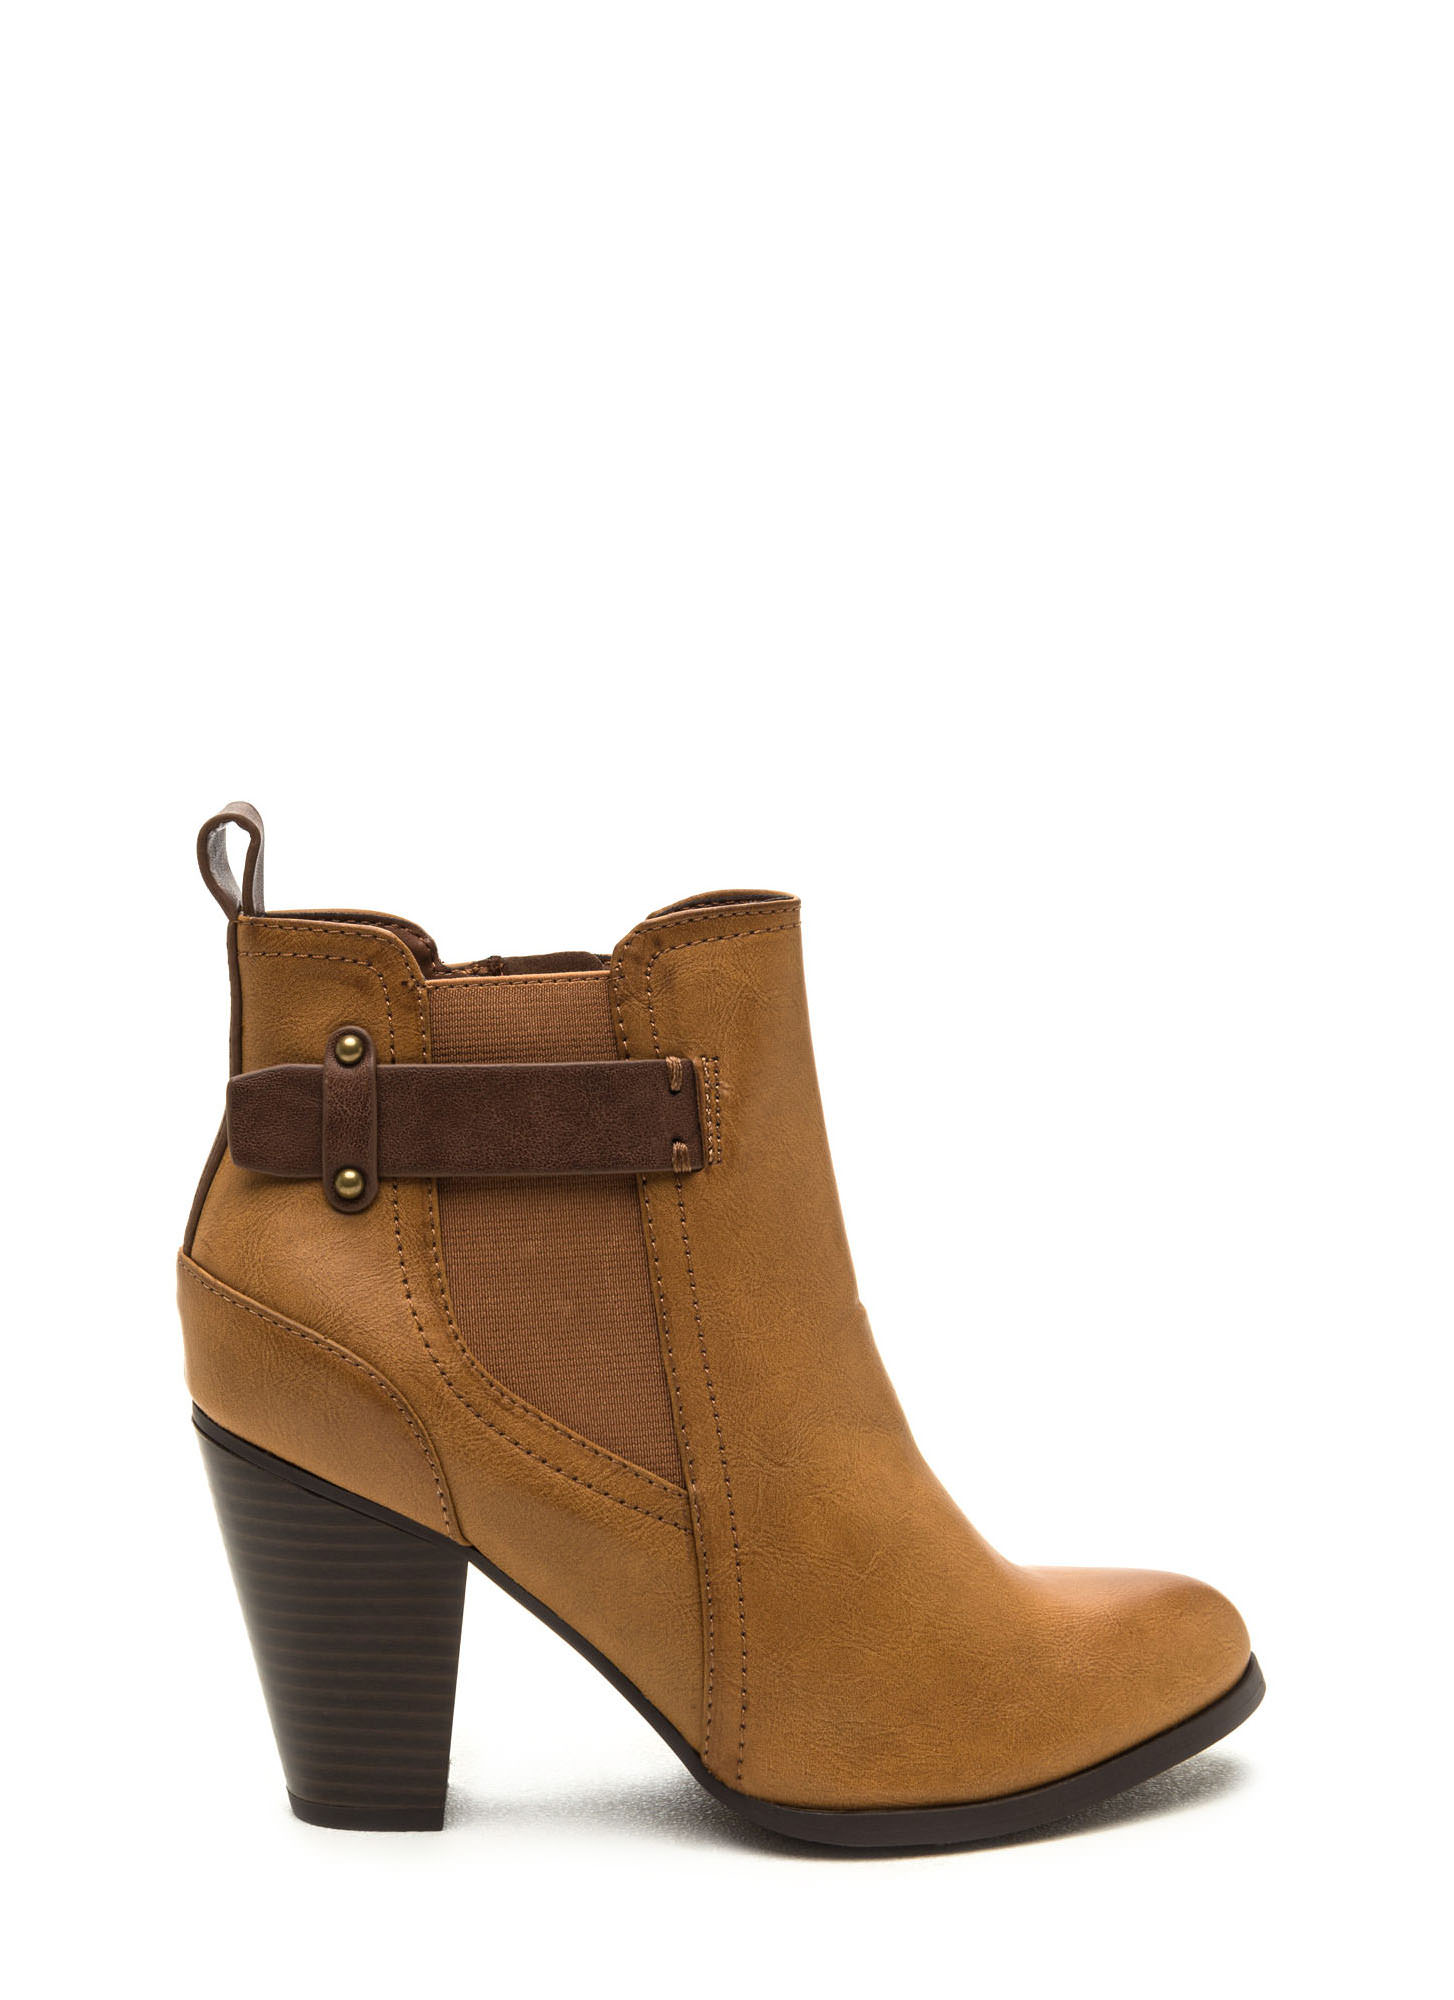 Focus On The Details Chunky Booties TAN